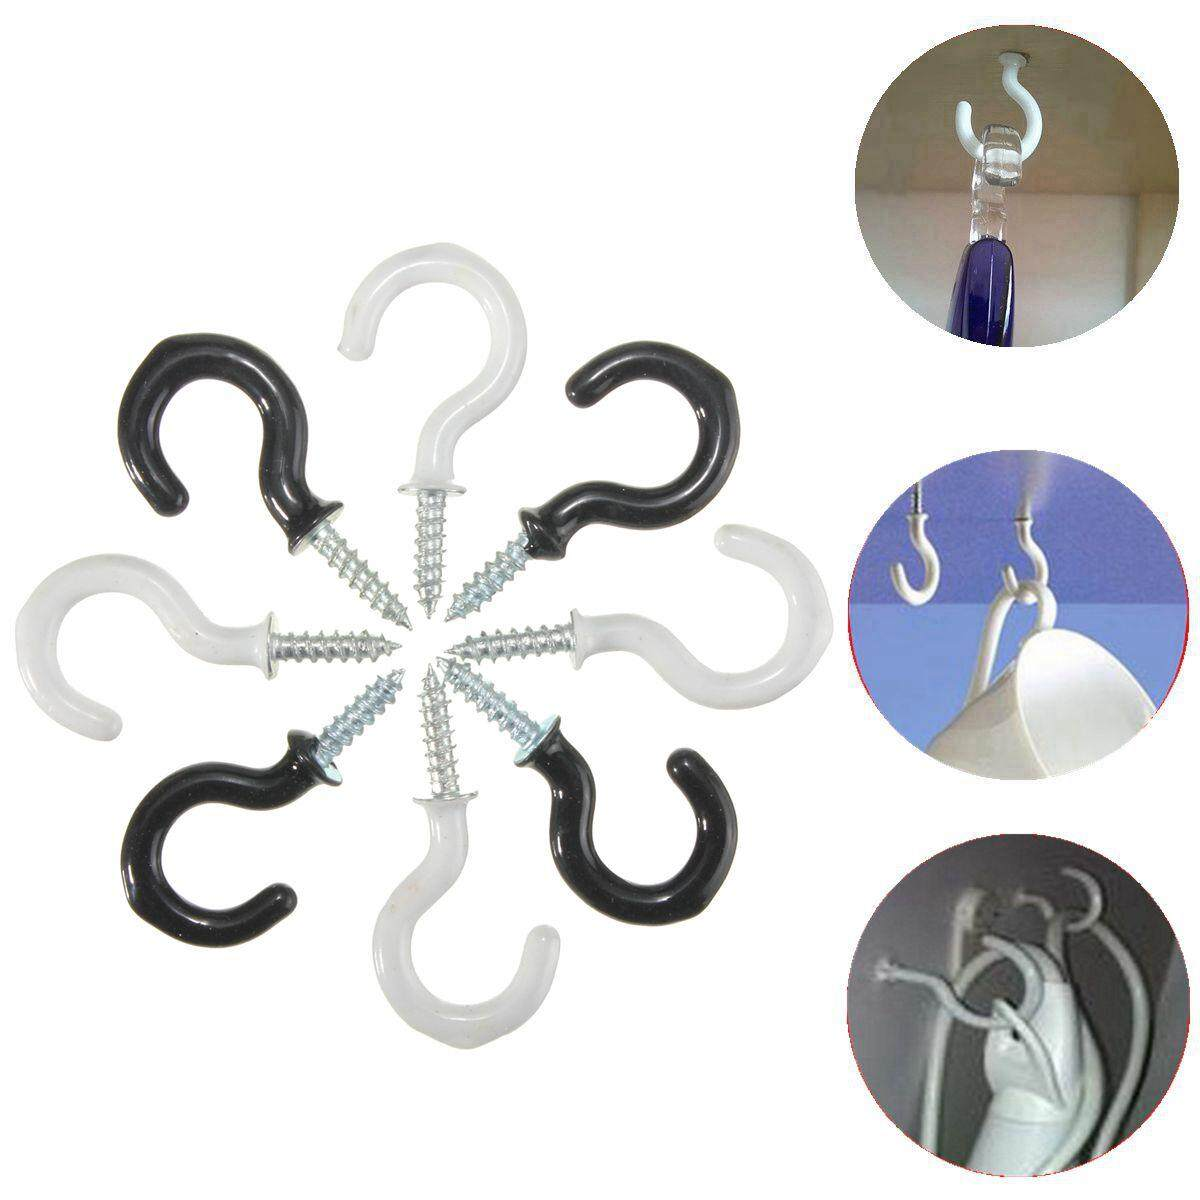 25pcs 30mm Screw In Cup Hook Picture Wall Hanging Plastic Coated Holder